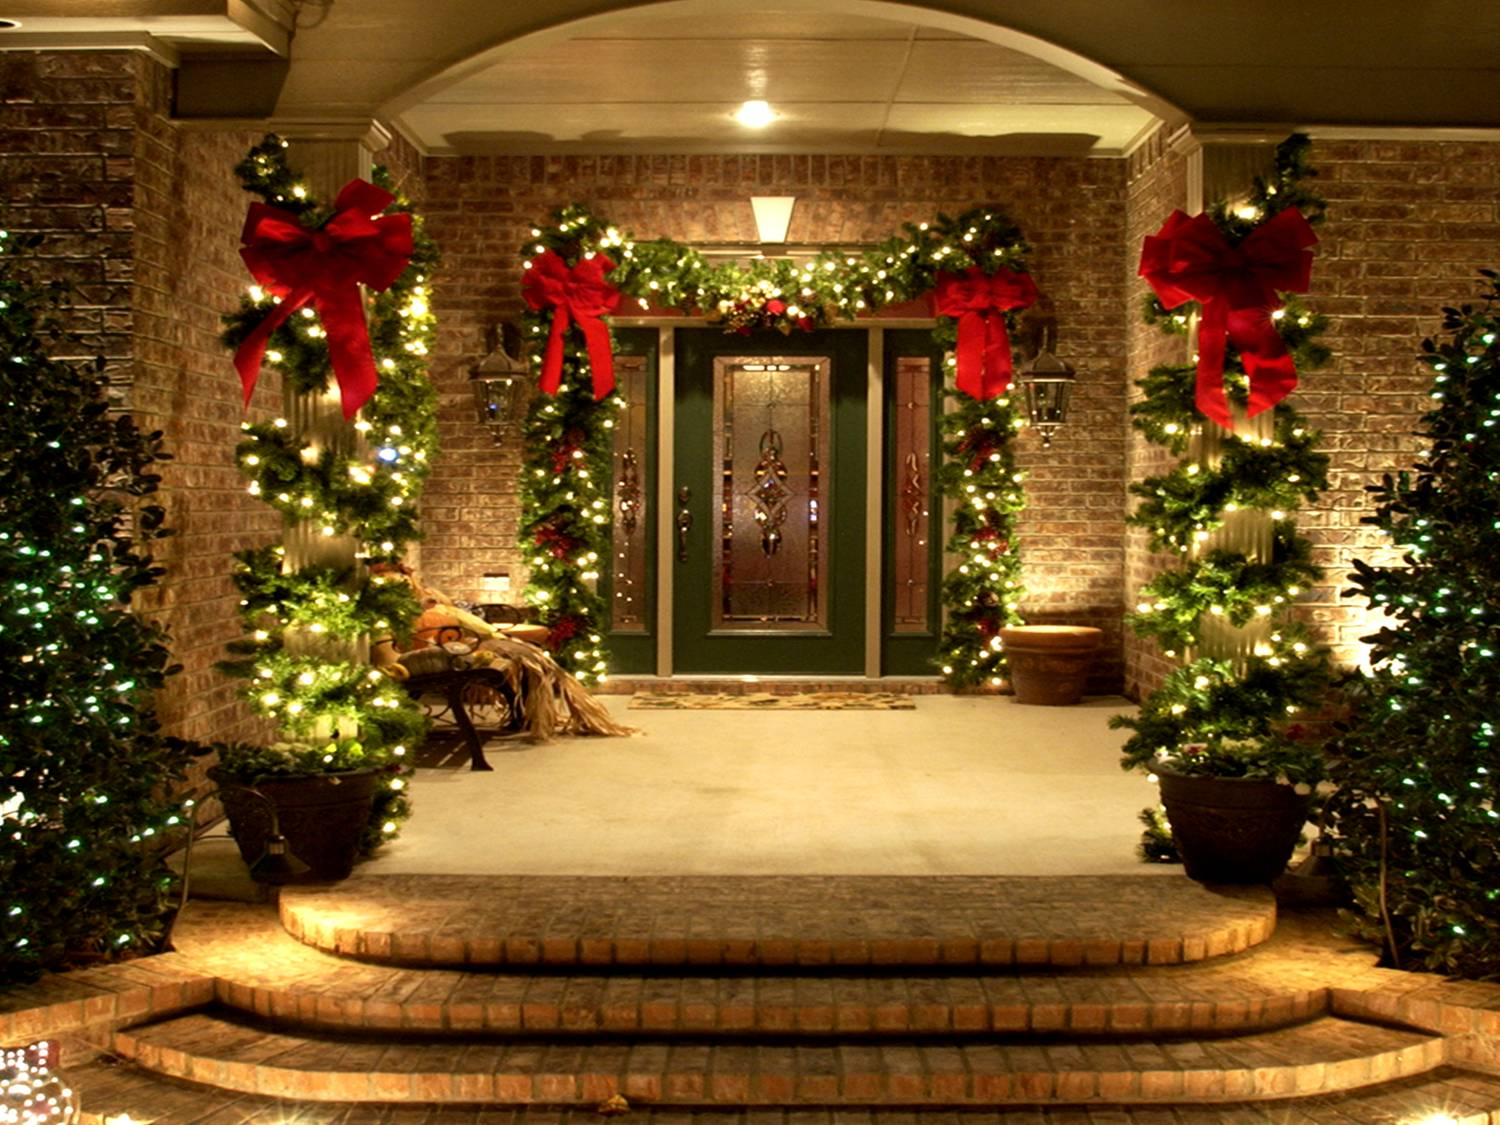 Attrayant 18 Most Striking DIY Christmas Porch Decorations That Will Melt Your Heart